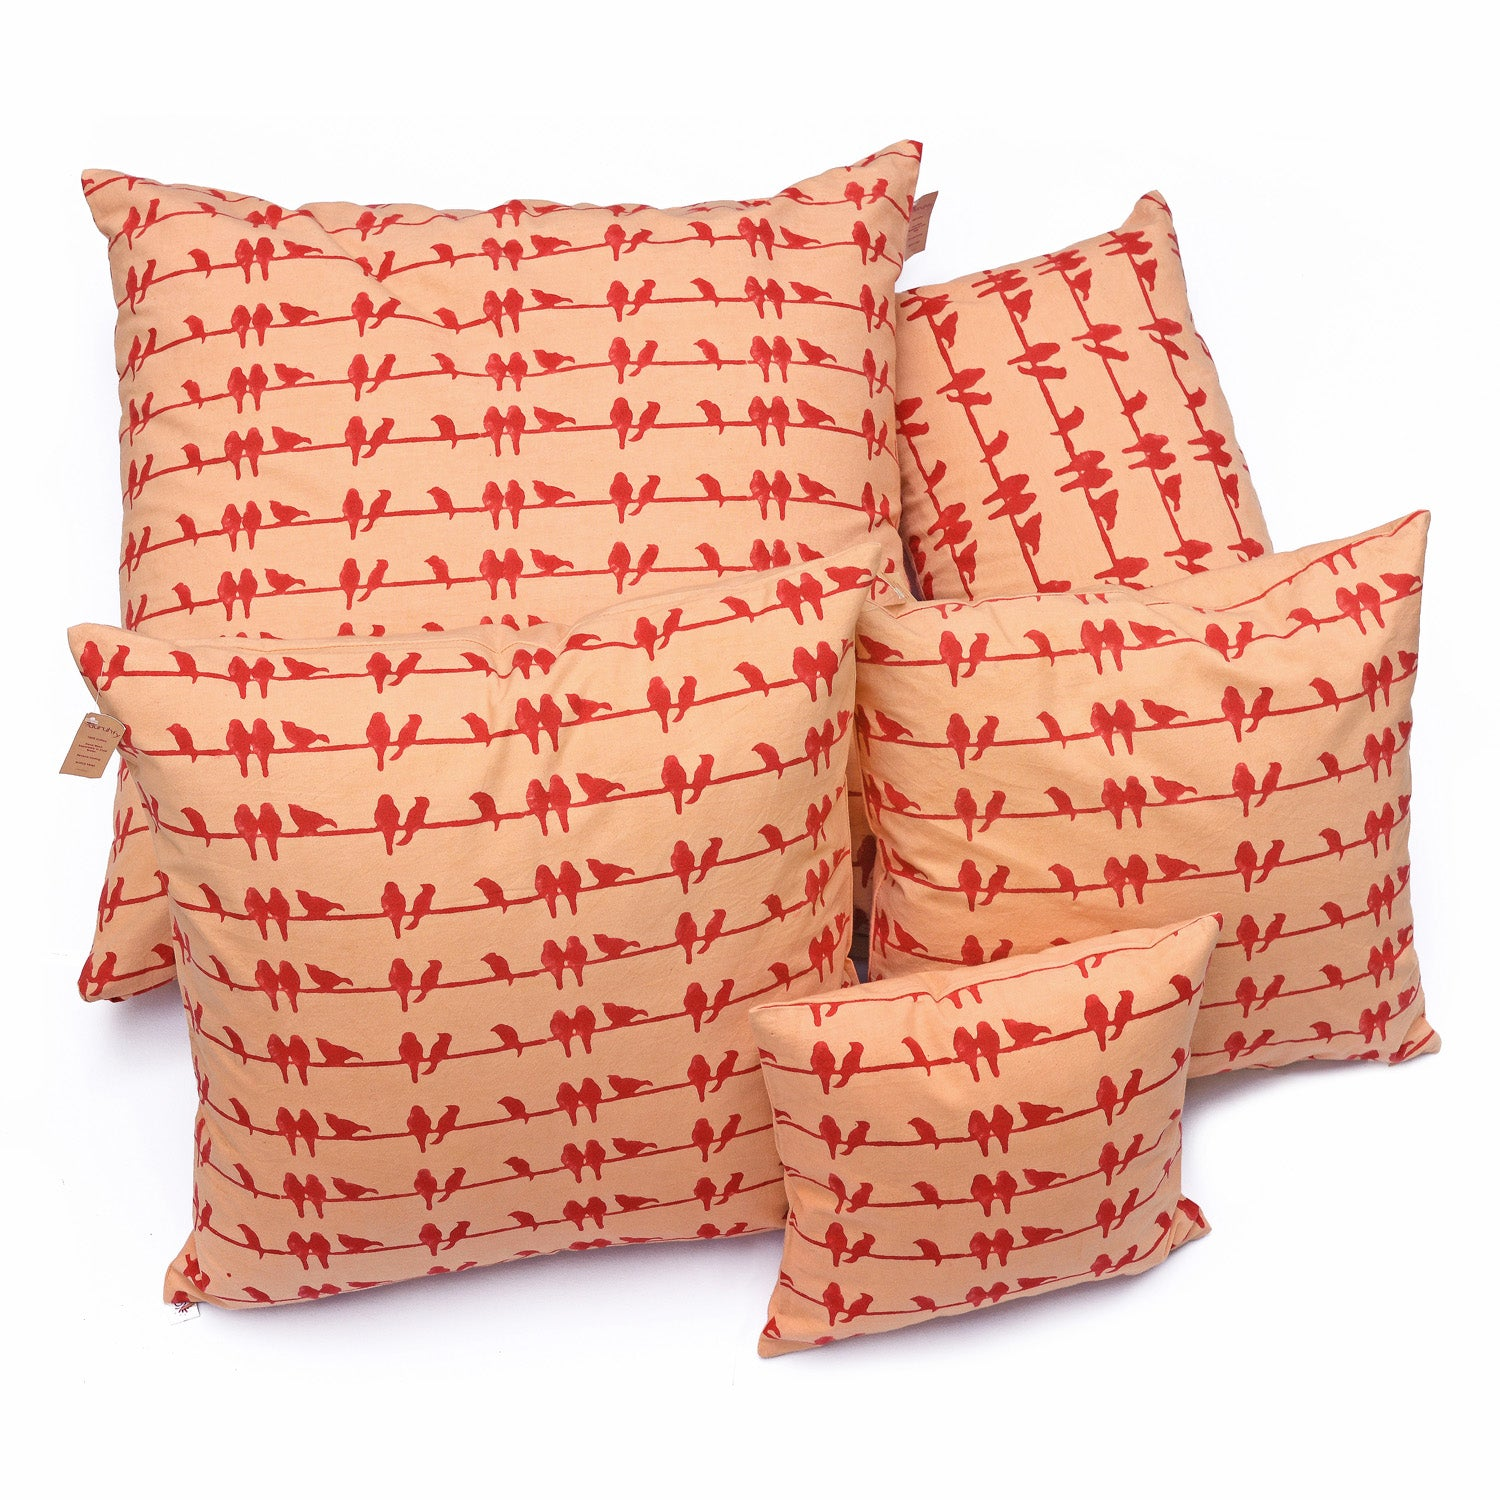 Whispering Red Birds Cushion Cover (12x20) - Auruhfy India